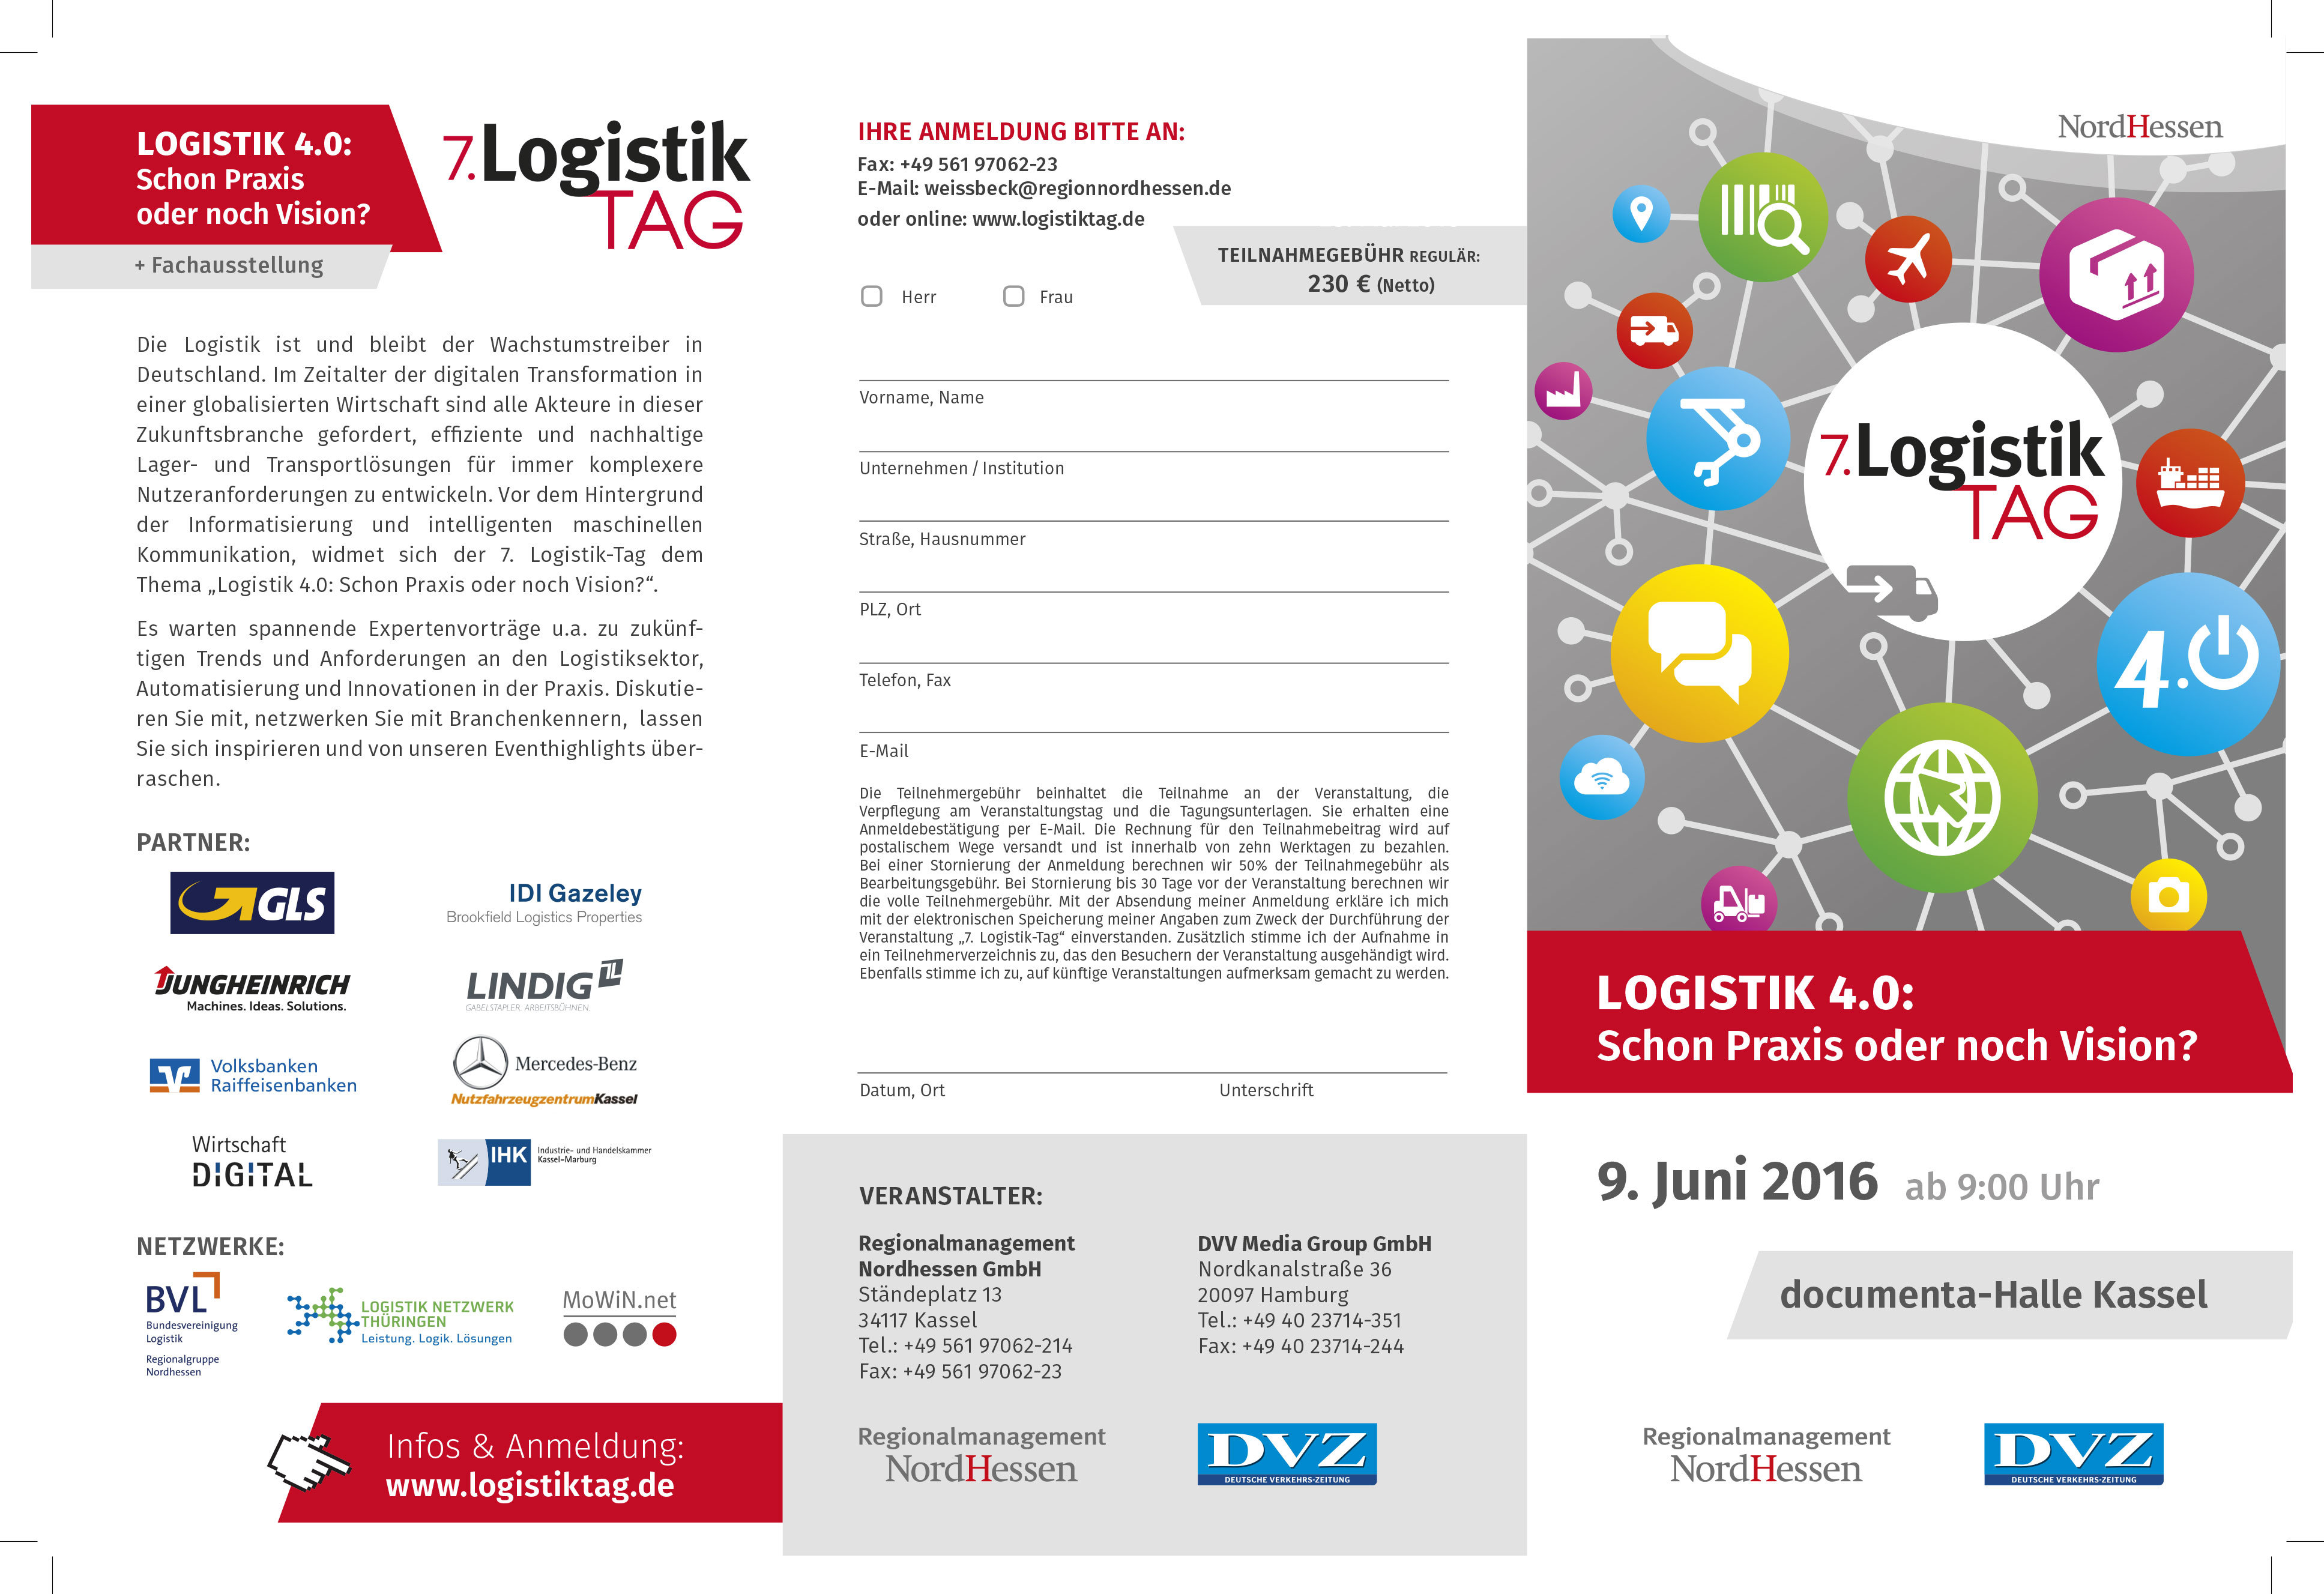 7 logistik tag am 9 juni 2016 in kassel logistic. Black Bedroom Furniture Sets. Home Design Ideas